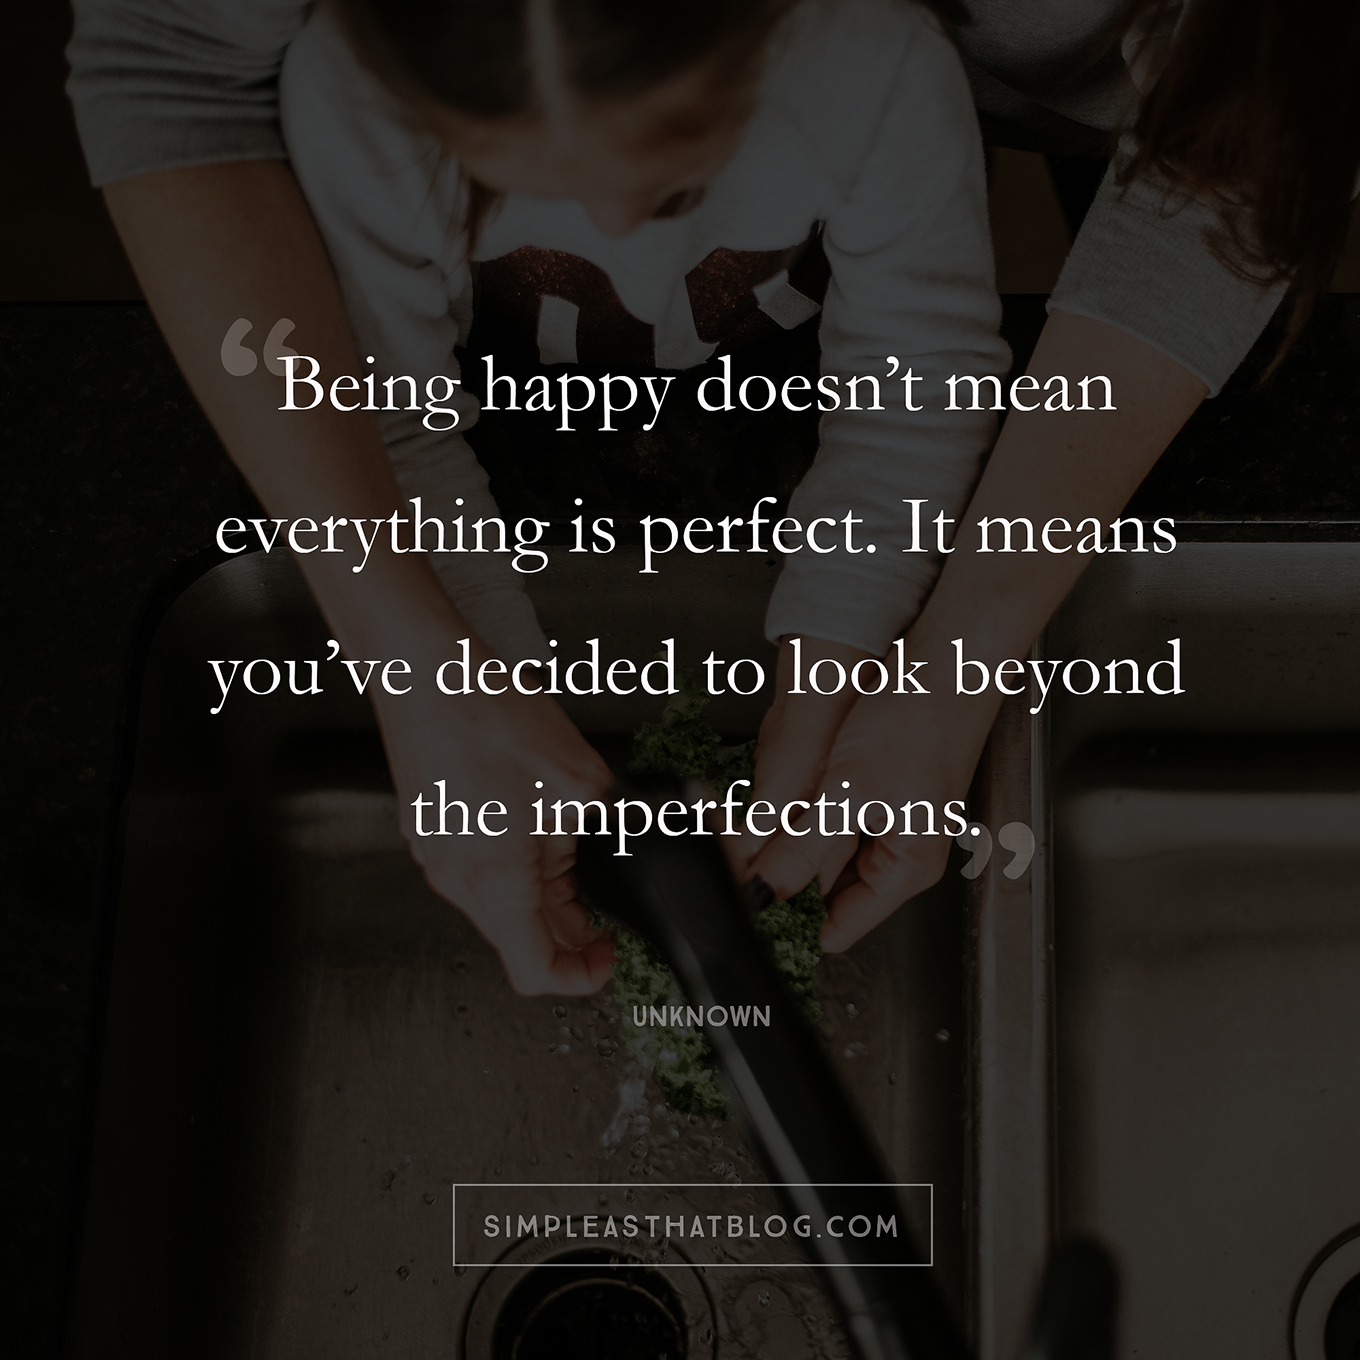 Perfectionism is robbing us of a beautiful, messy, and authentic motherhood. It's an all or nothing game, and there's just no winning. Maybe we can start letting go of perfect and give ourselves credit for simply doing our best.